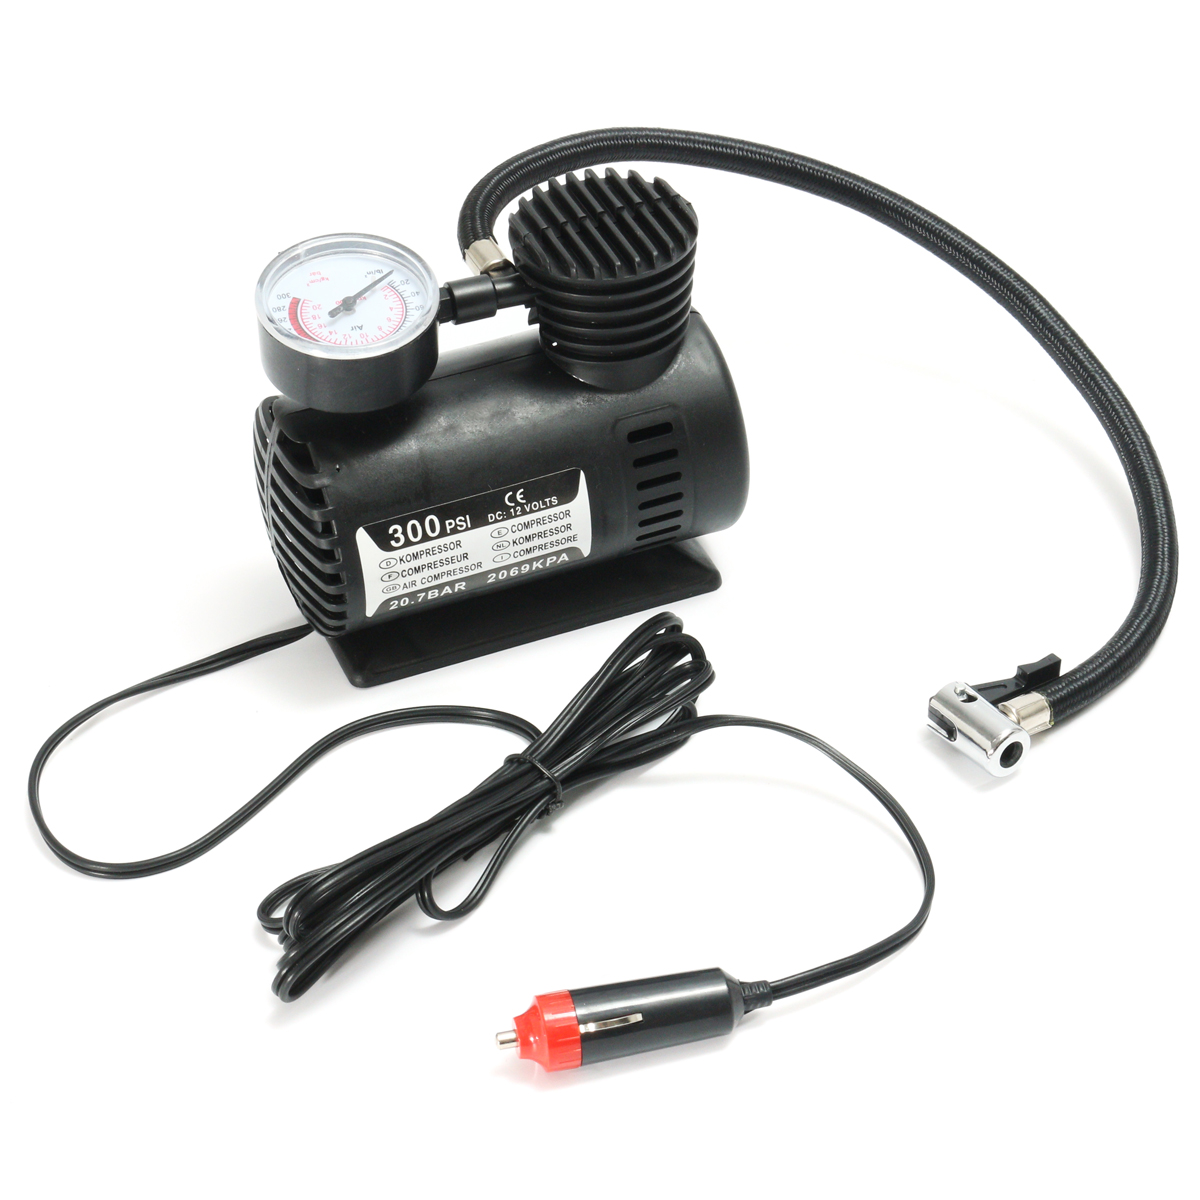 DC 12V 300Psi Portable Air Compressor Pump Tyre Inflato